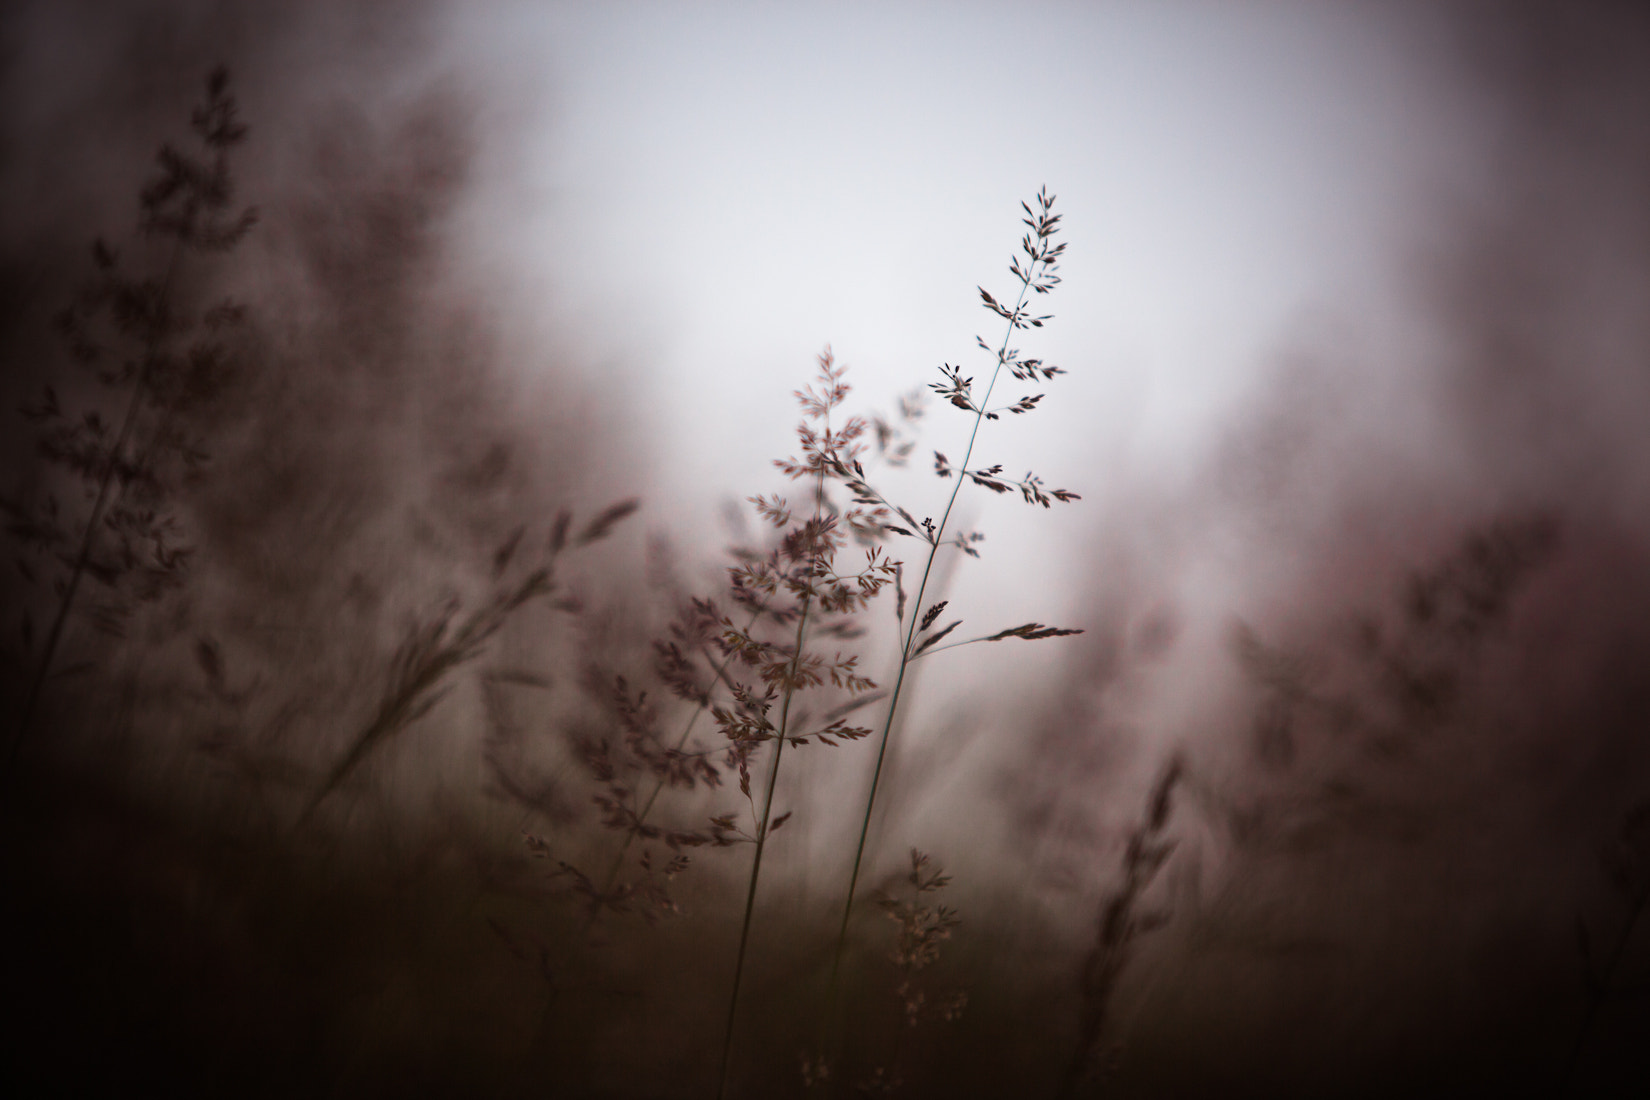 Photograph eveninggrass°2 by Tobias Ritz on 500px